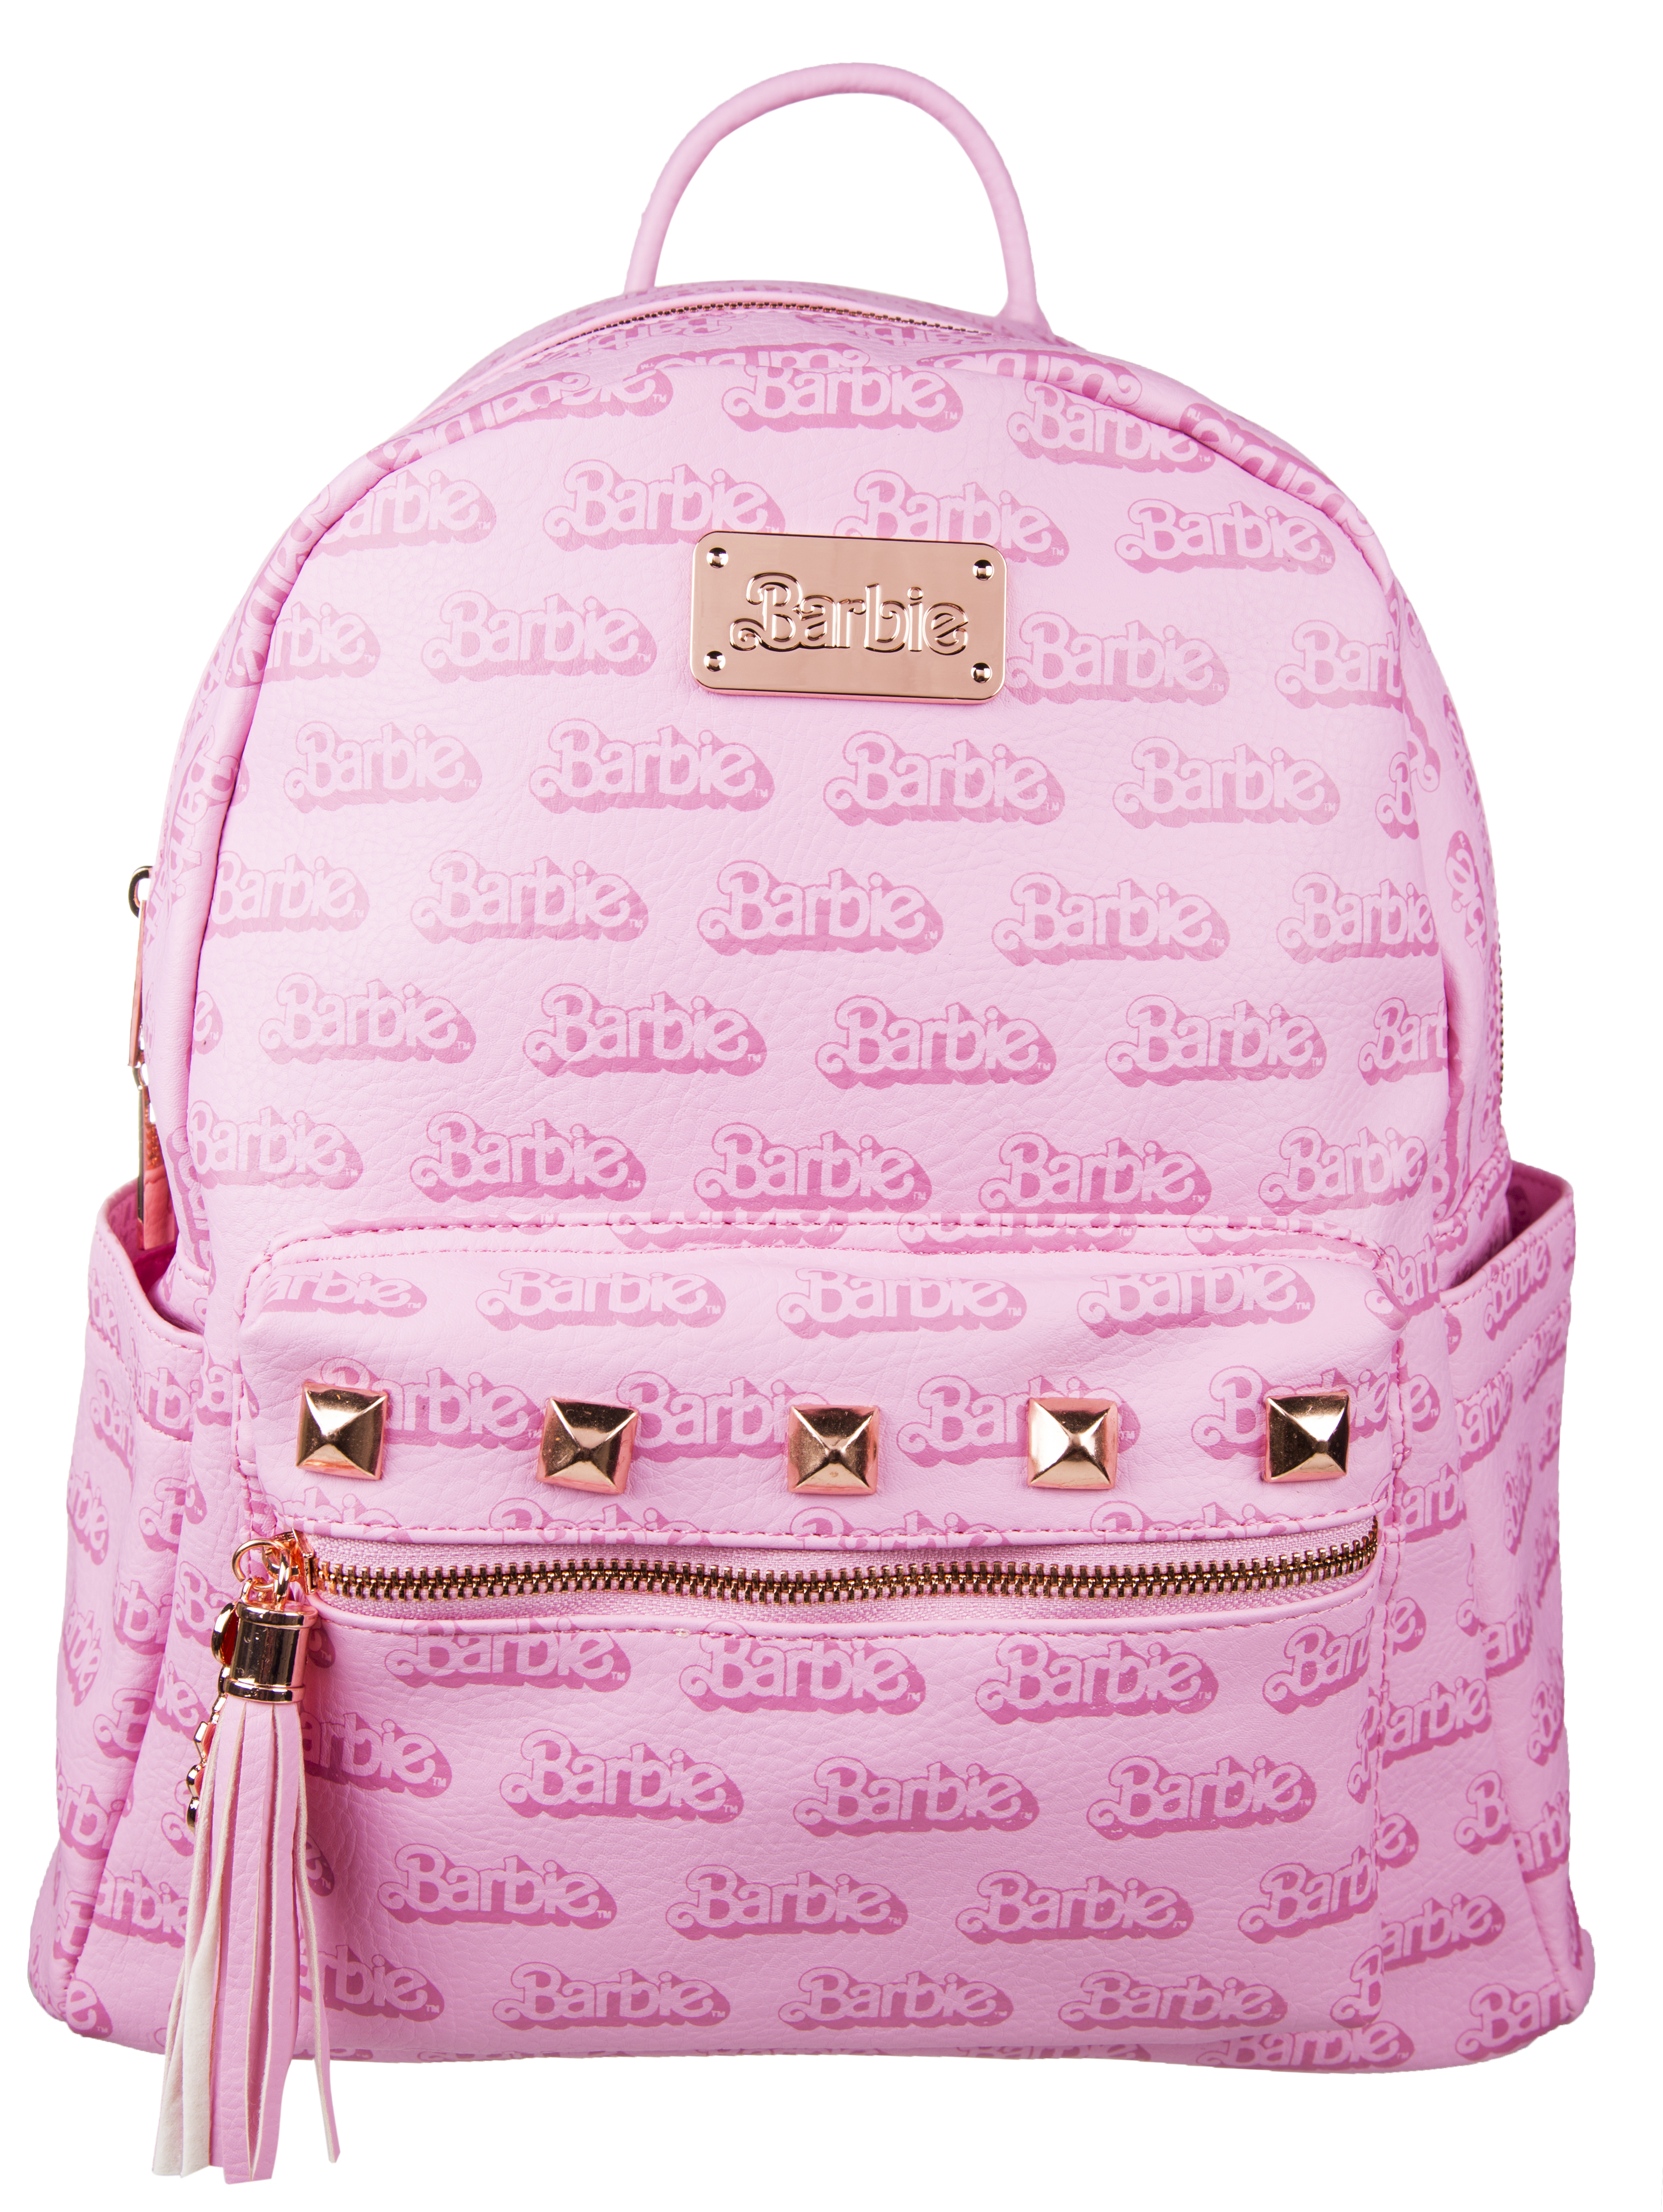 Pink barbie logo backpack pink barbie logo backpack made from premium quality pu fabric all over printed barbie logo design rose gold stud detail gumiabroncs Images